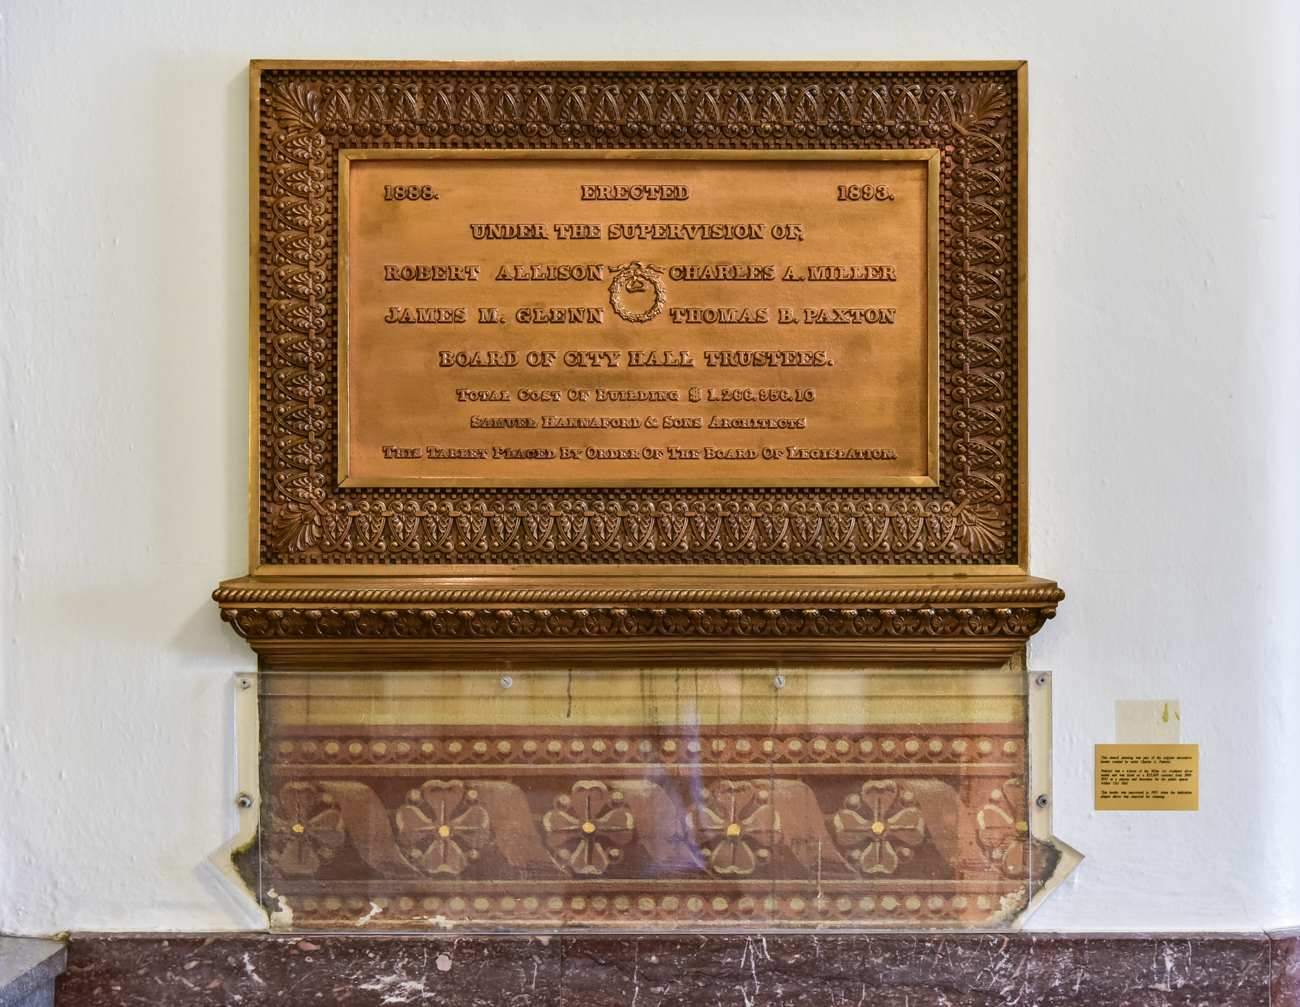 A plaque detailing the history of those officials responsible for the building's erection sits on the wall near the Plum Street entrance. Below it, a preserved piece of the original building's wall design is protected under plexiglass. / Image: Phil Armstrong, Cincinnati Refined // Published: 1.20.17